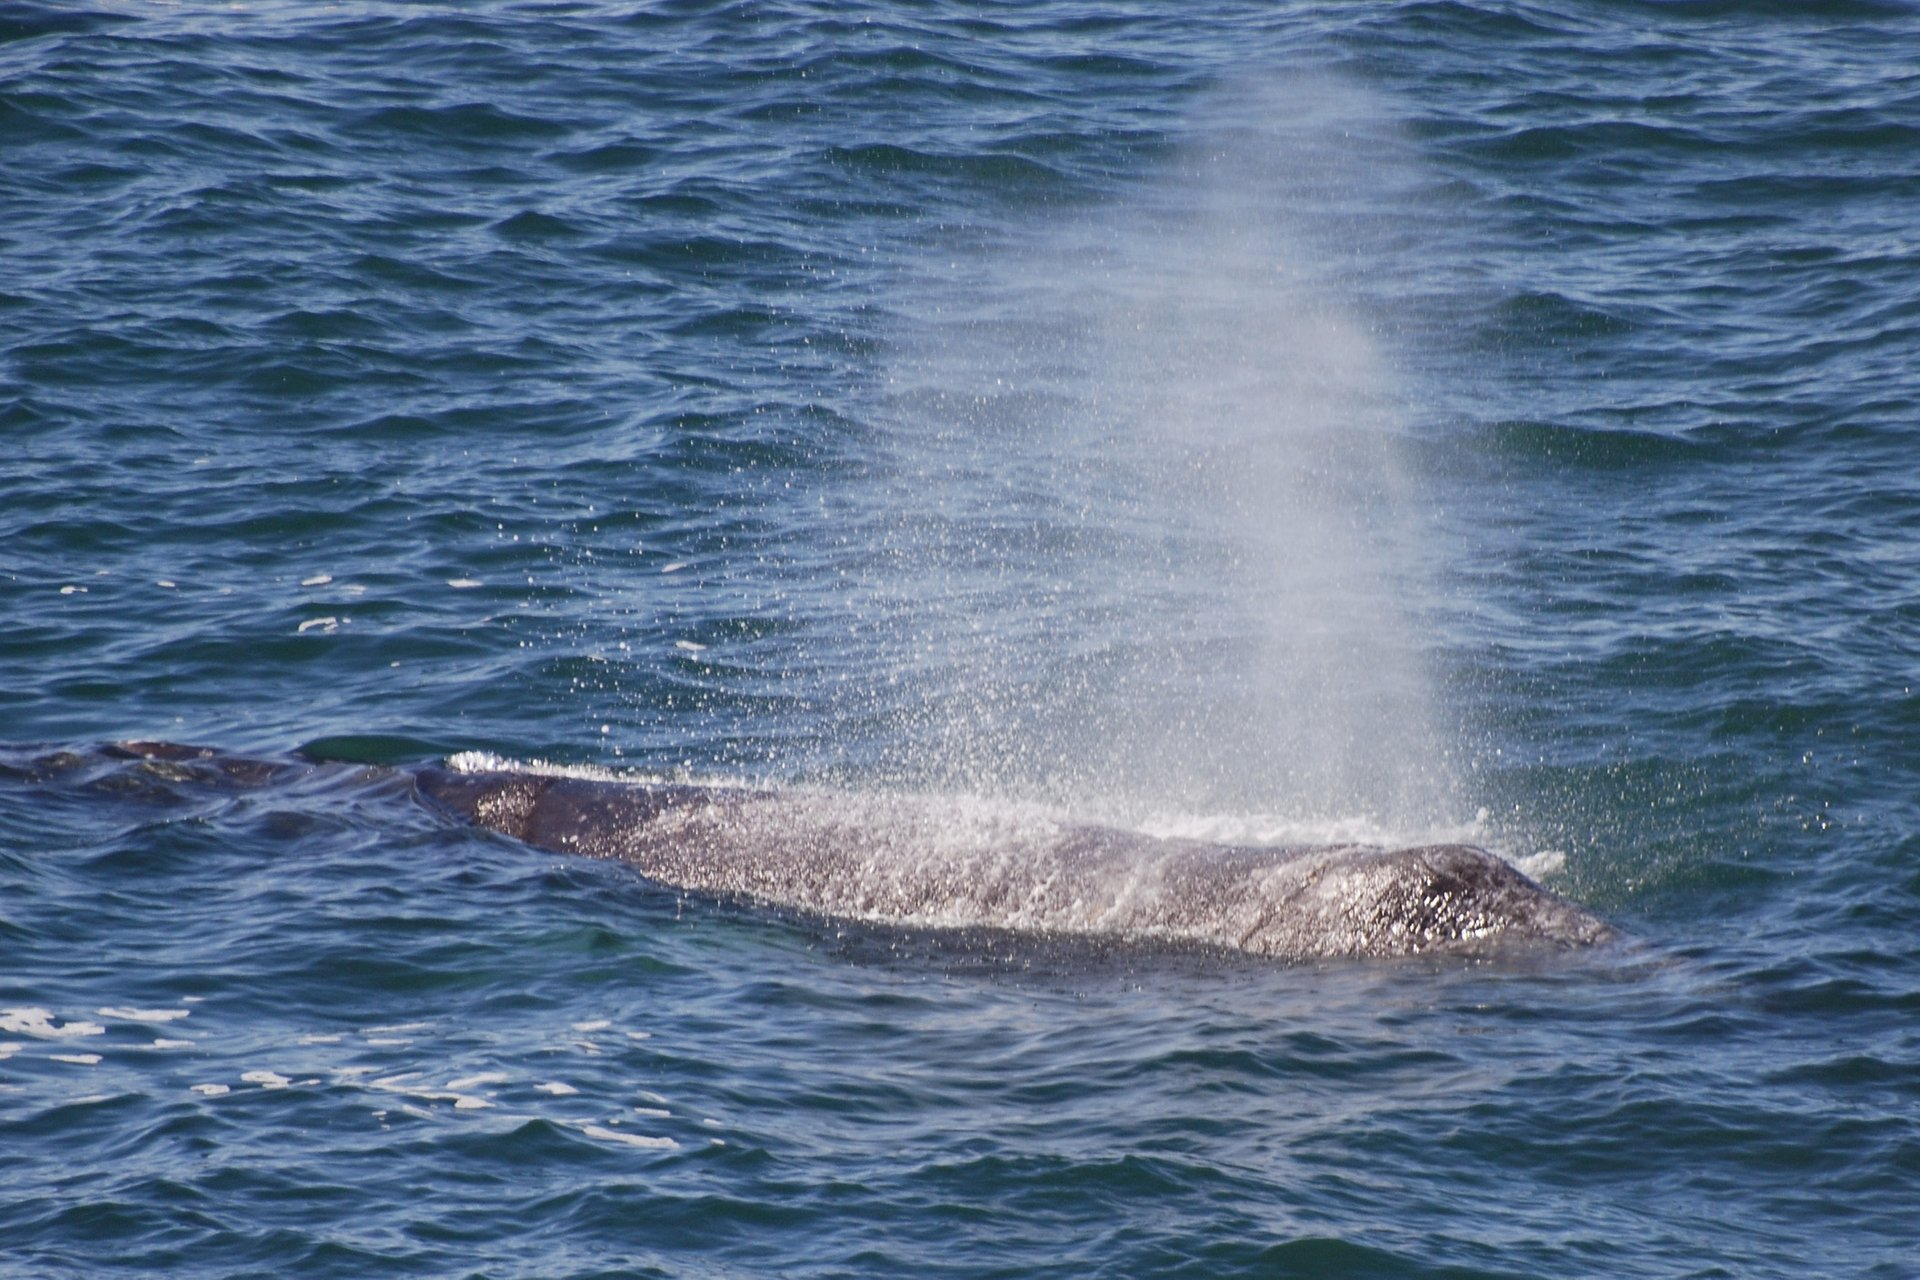 Whale Watching in Oregon - Best Season 2020